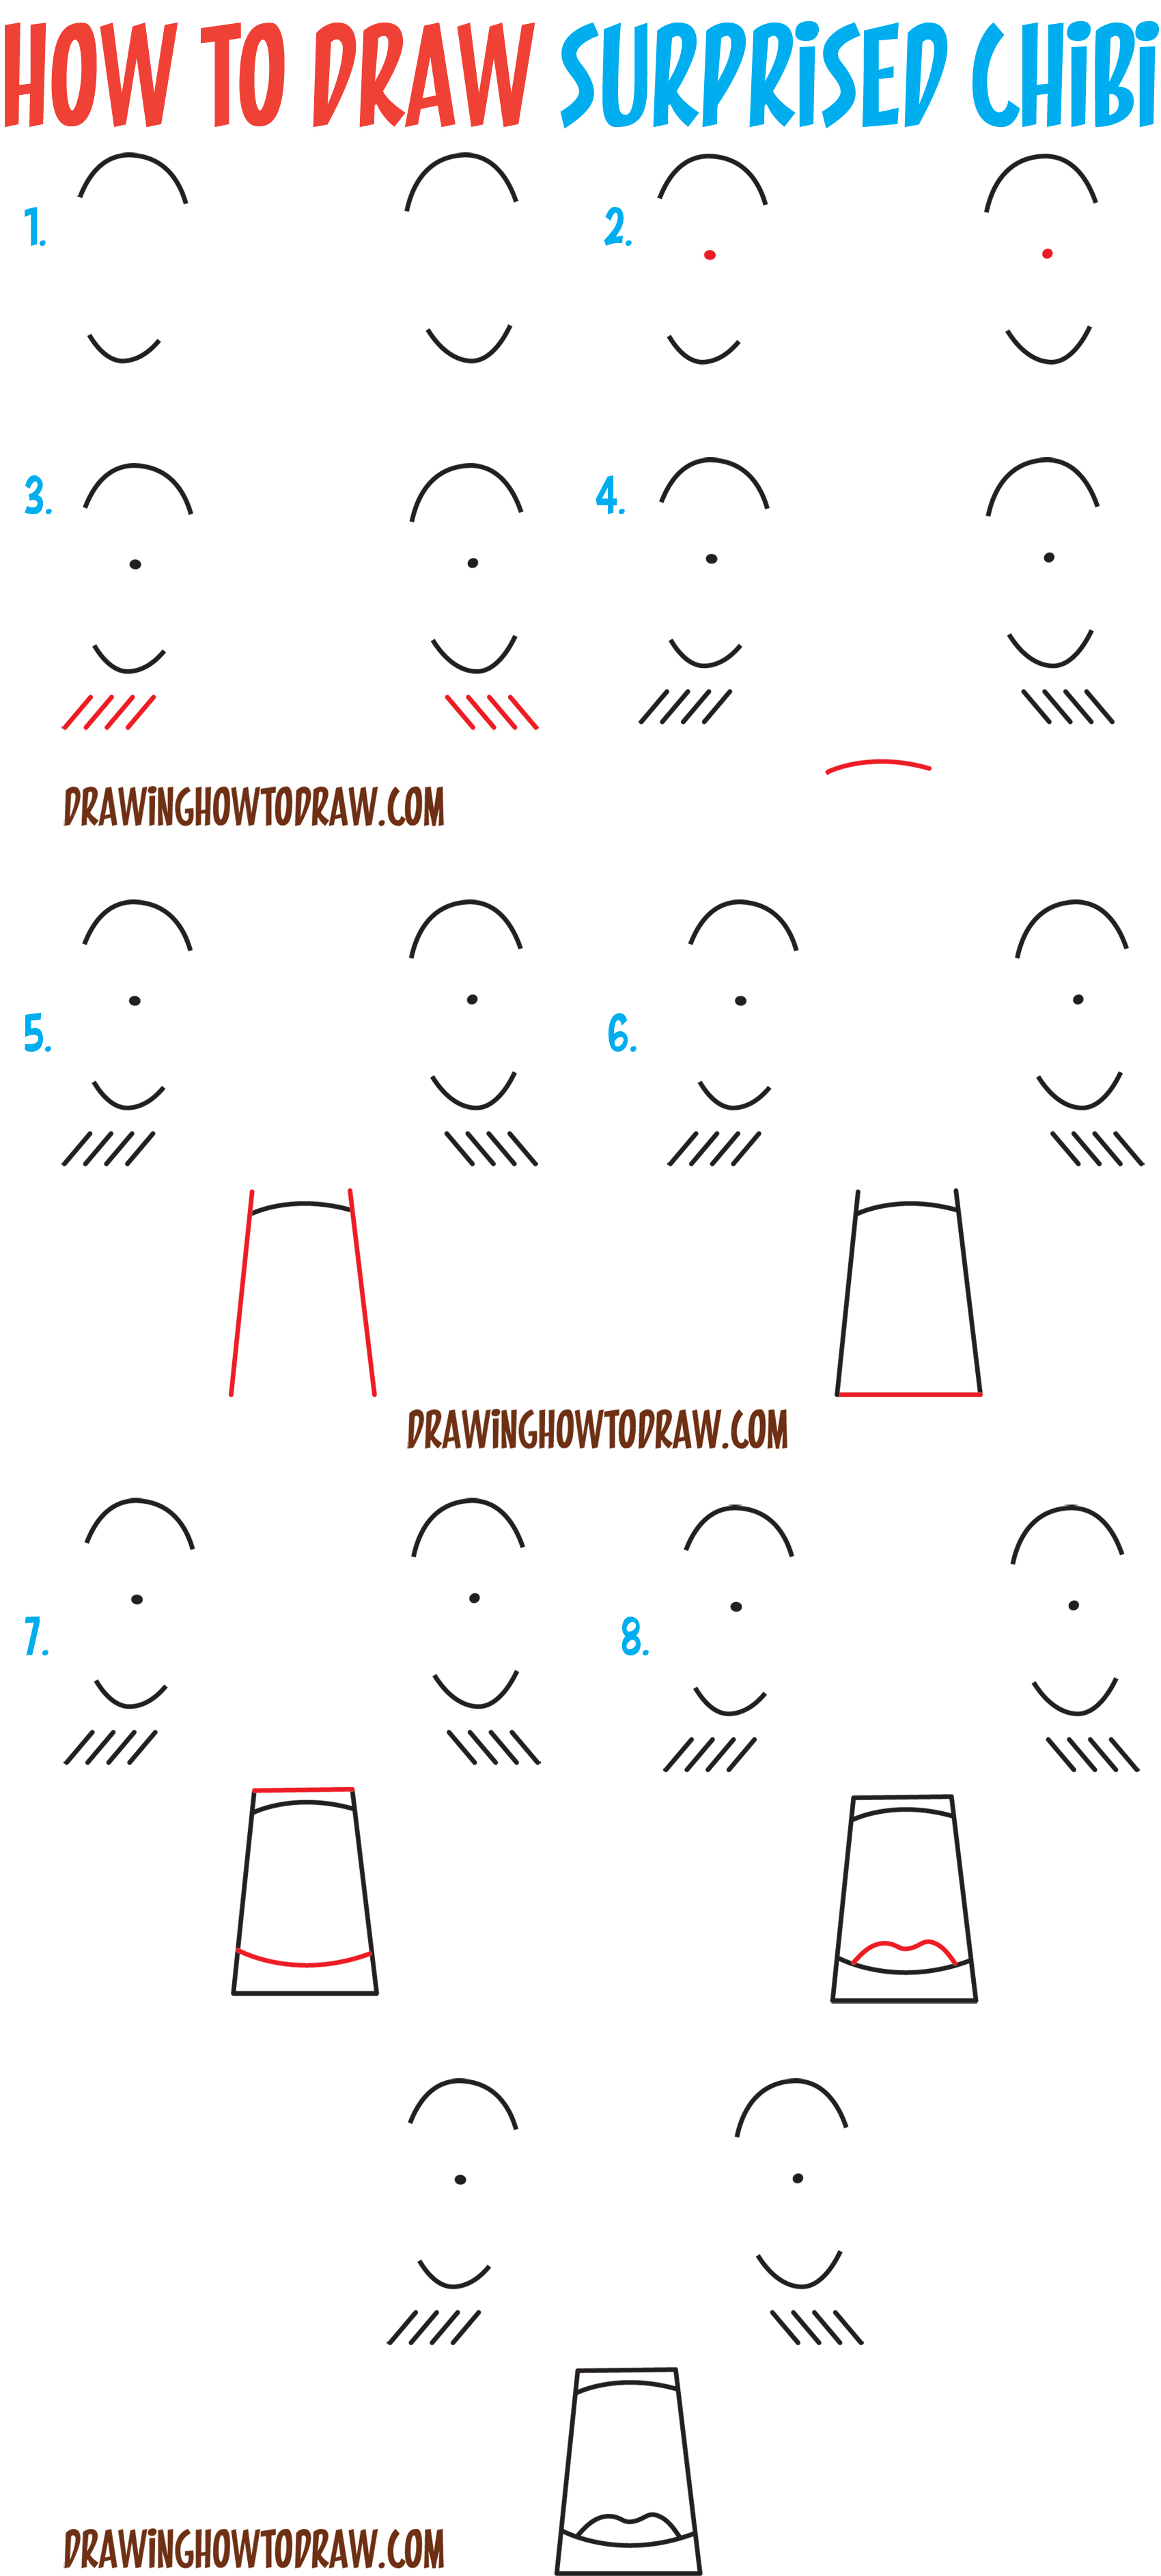 How to Draw Dazed / Confused / Surprised / Shocked / Scared Chibi Expressions and Emotions - Easy Steps Drawing Tutorial for Beginners